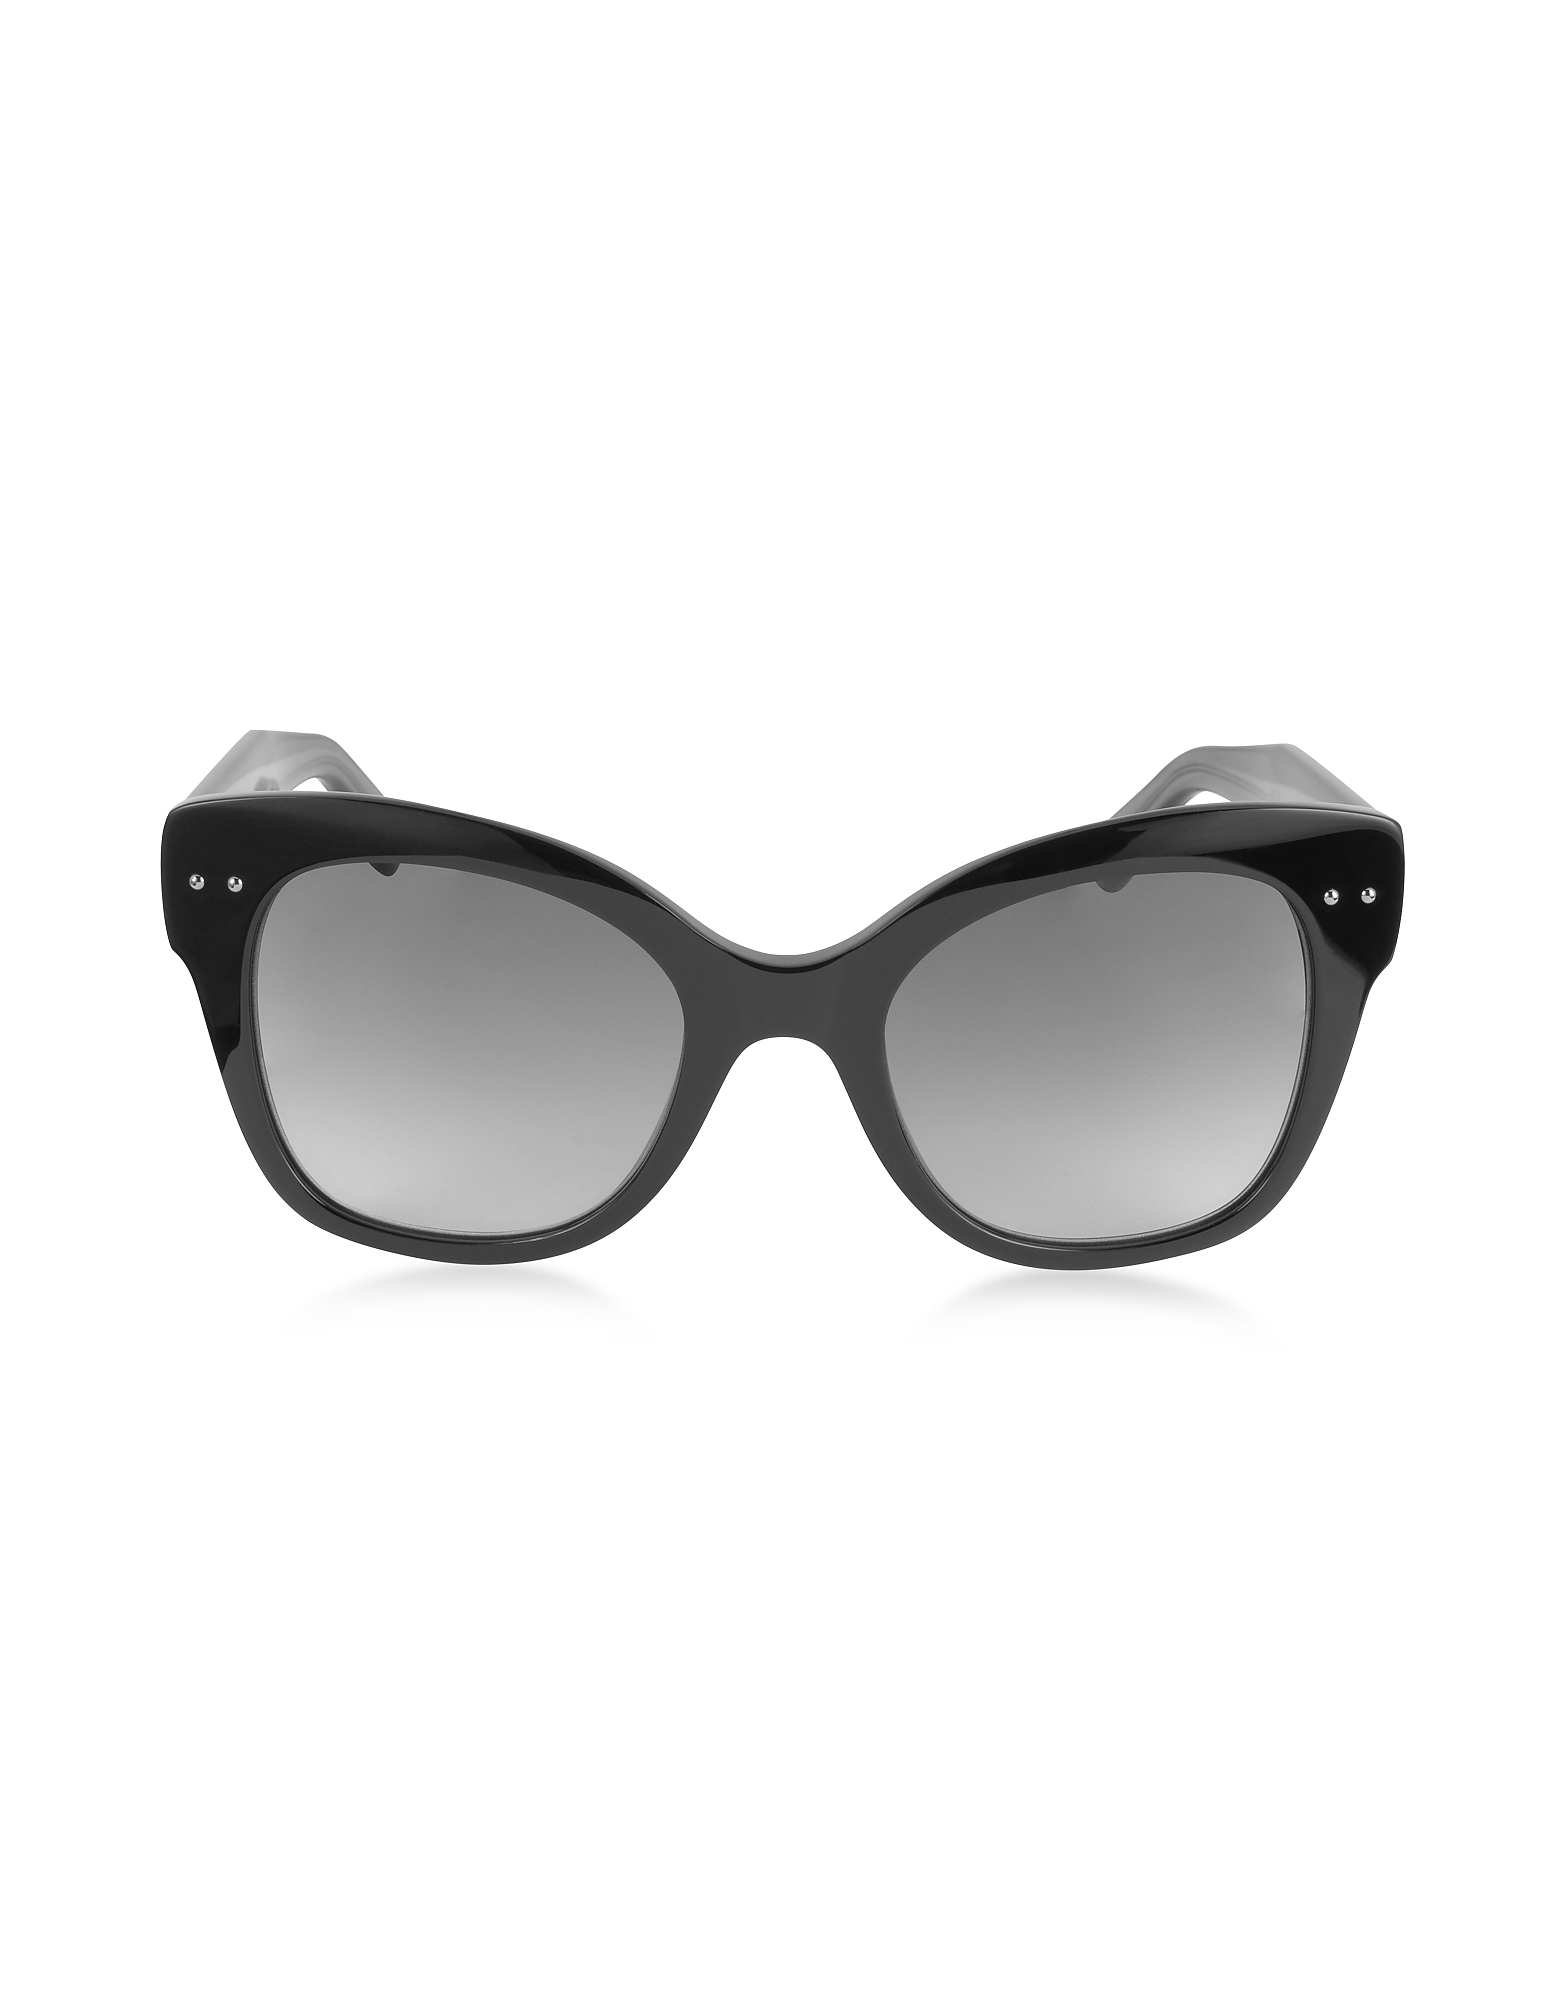 BV0083S Occhiali da Sole Donna in Acetato Cat Eye